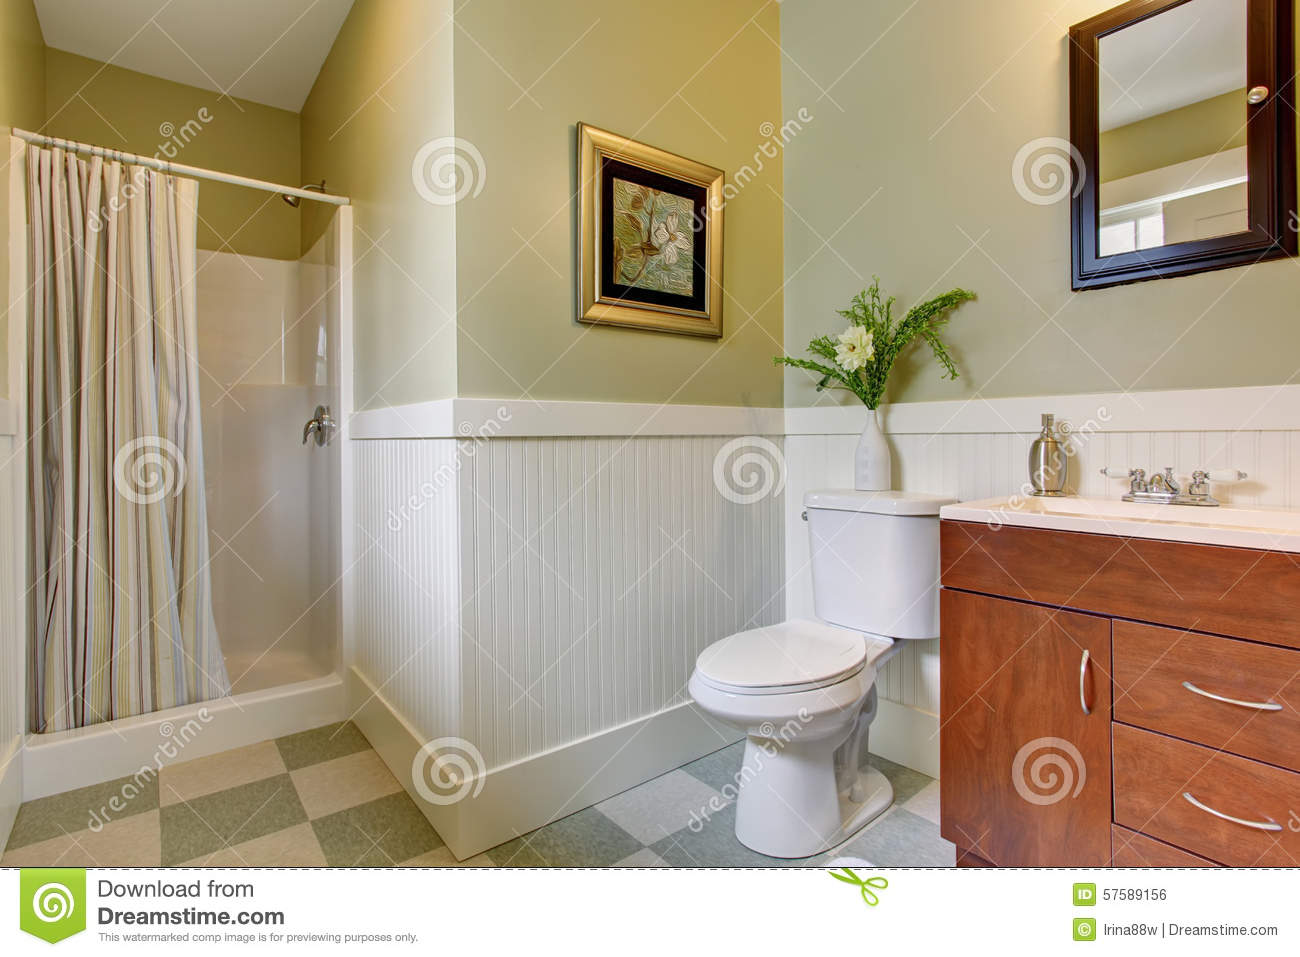 Bathroom With Checkered Tile Floor And Green White Walls